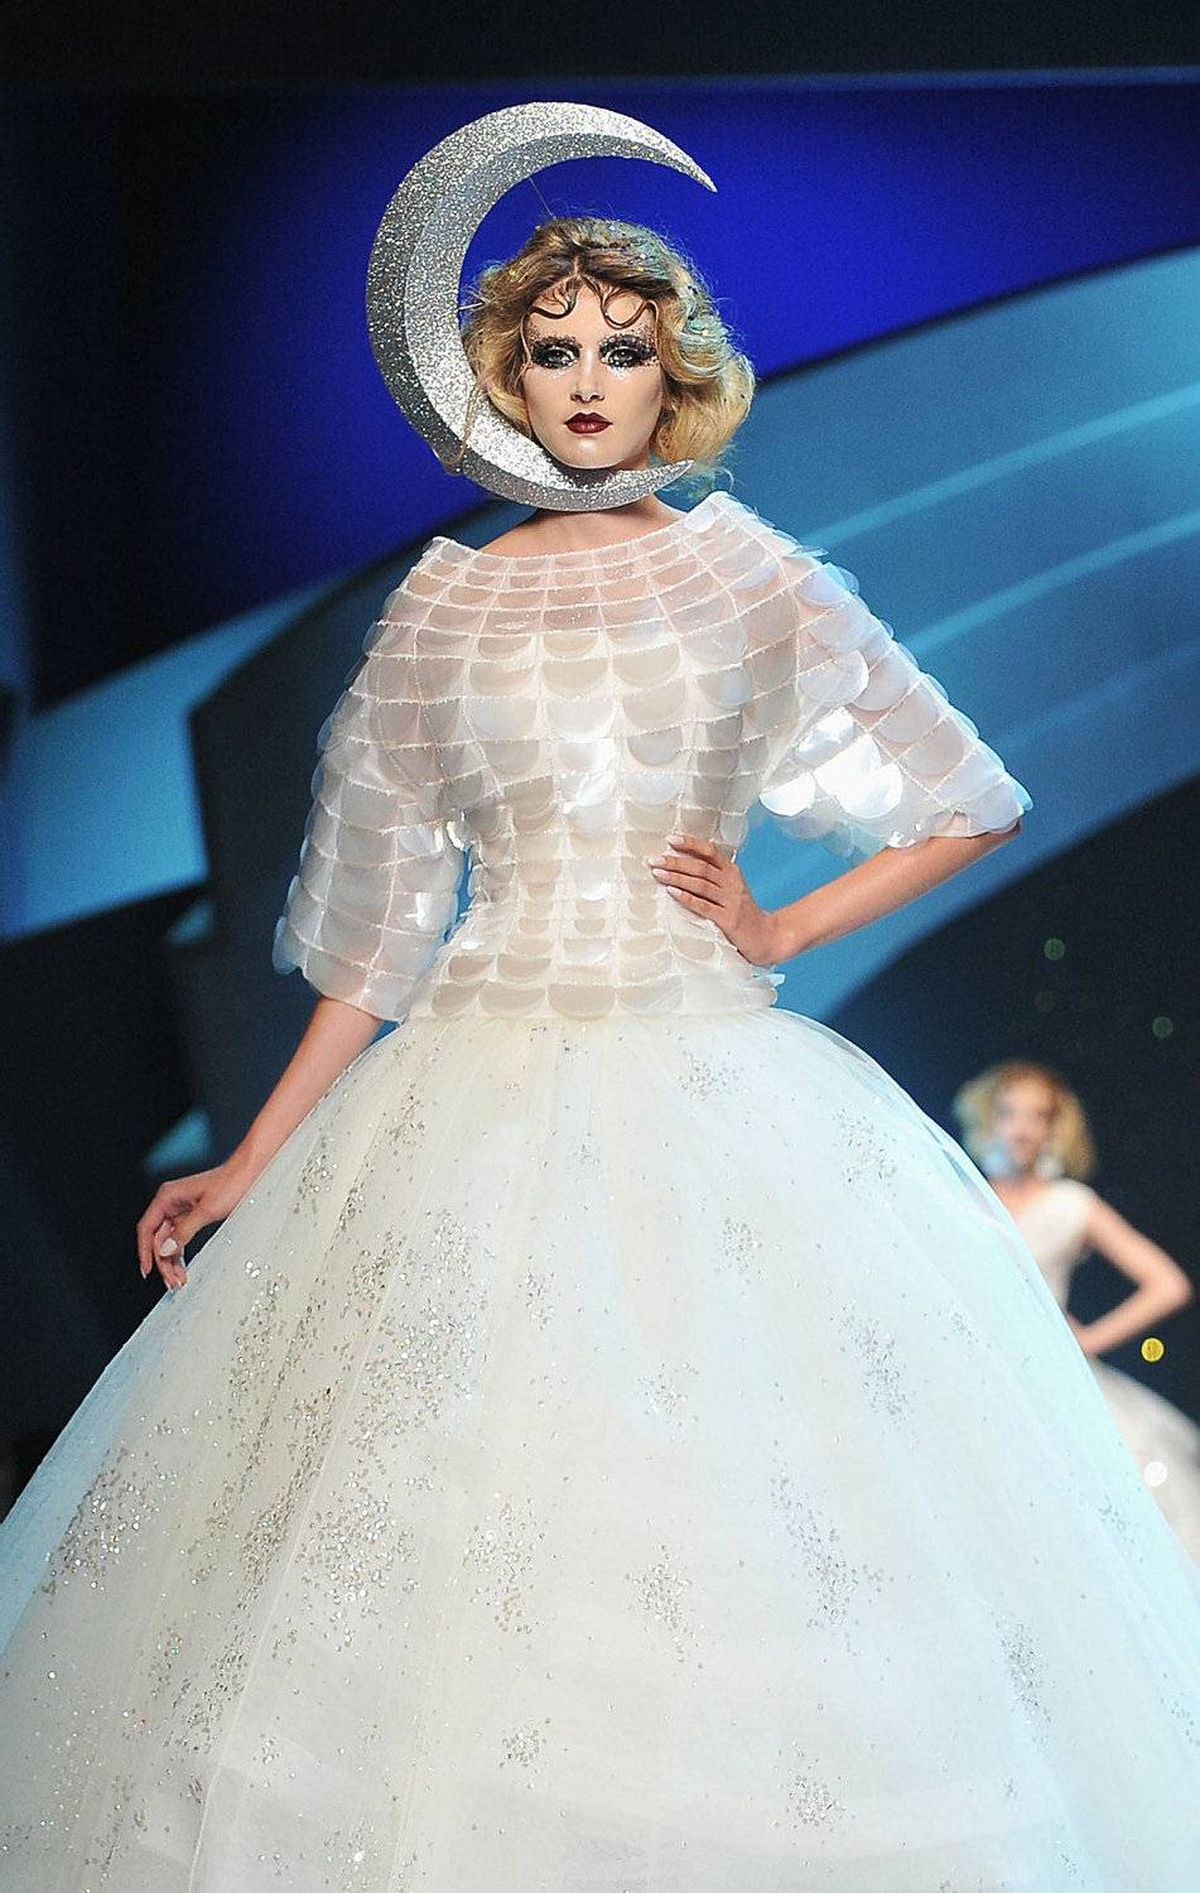 This was also a year of silly headpieces - on and off the runway. Like this. Well, at least she doesn't have her head in the clouds.